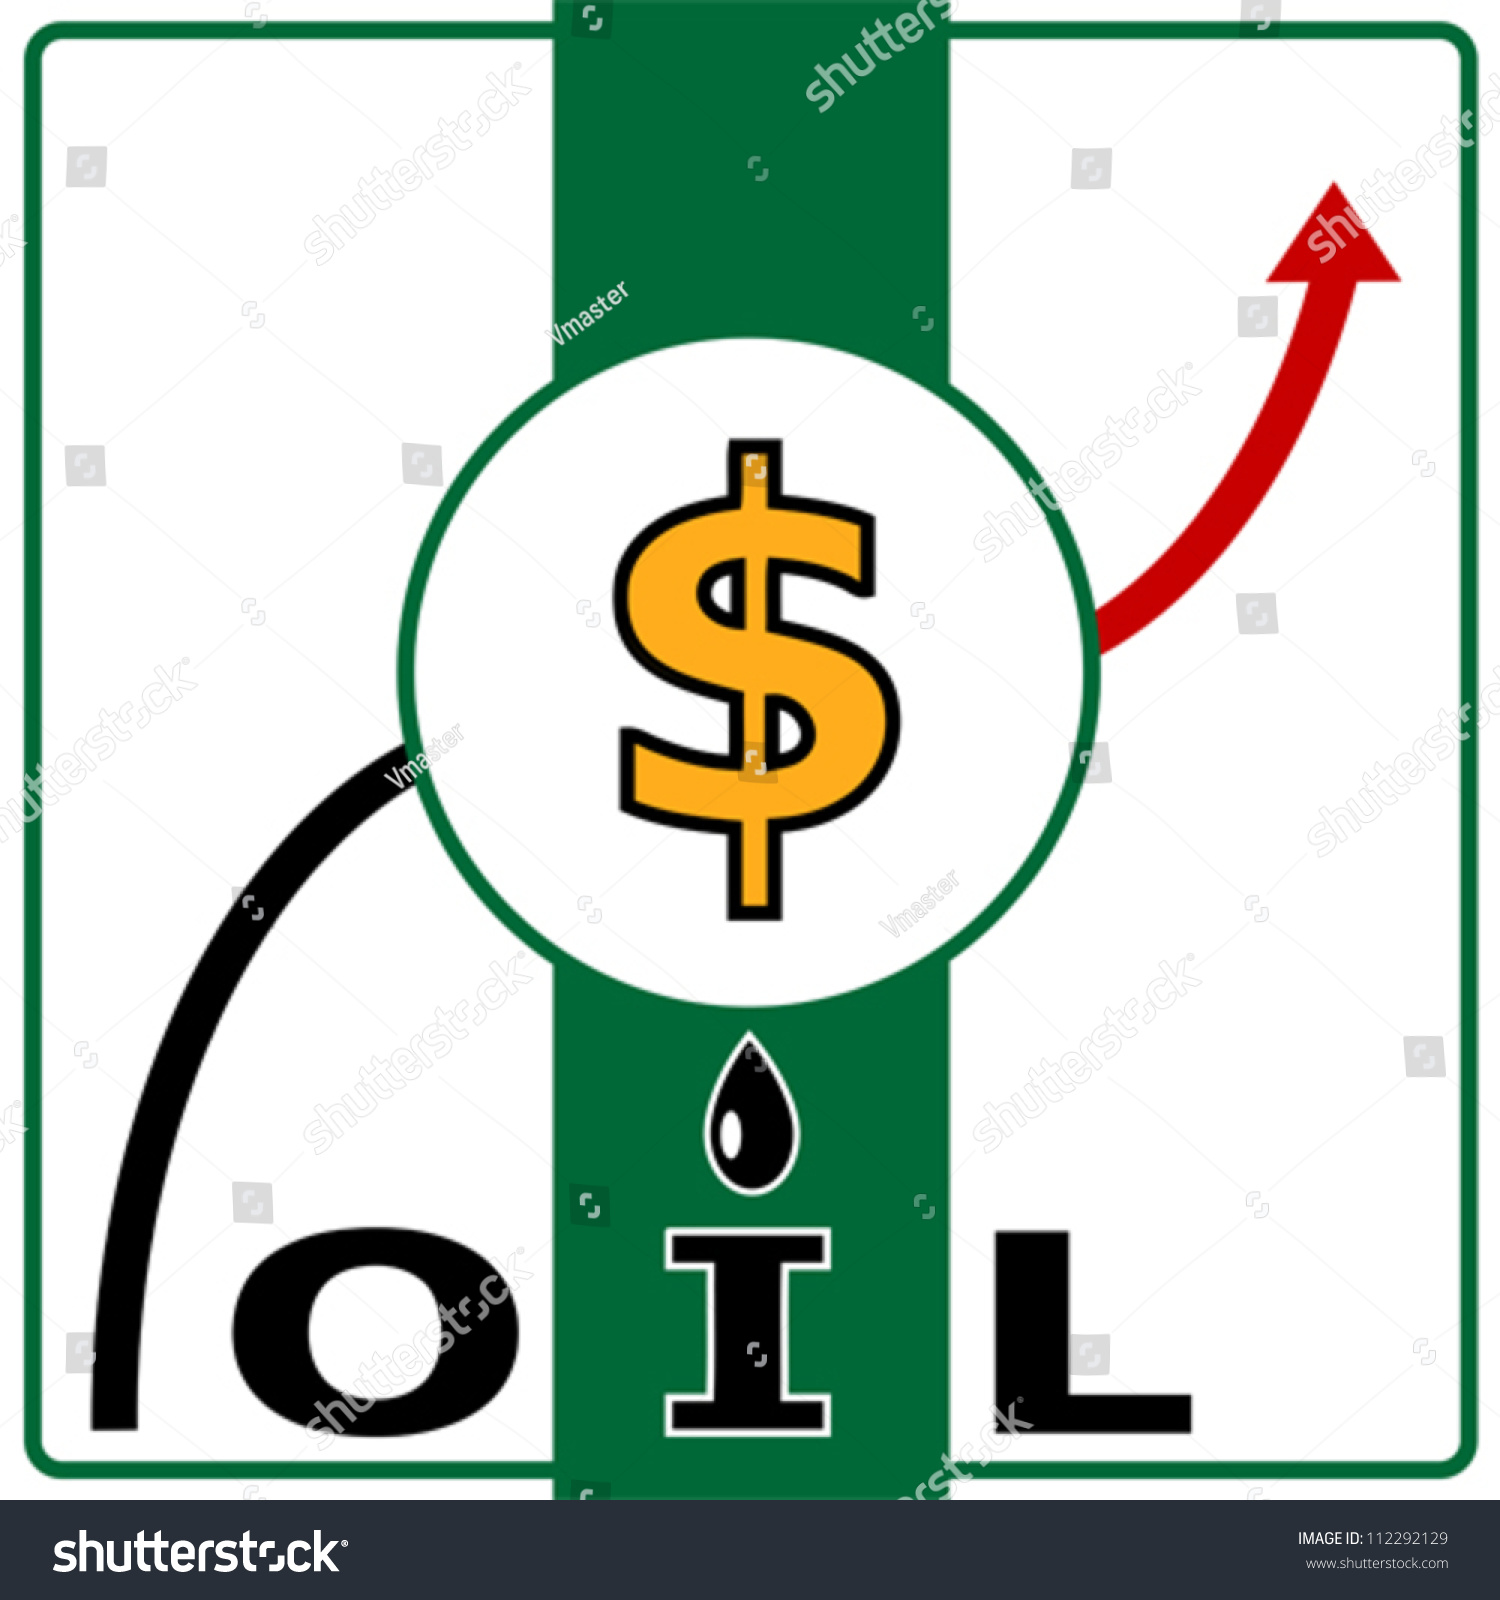 Oil price vector illustration crude oil stock vector 112292129 oil price vector illustration of crude oil and dollar sign with arrow biocorpaavc Gallery